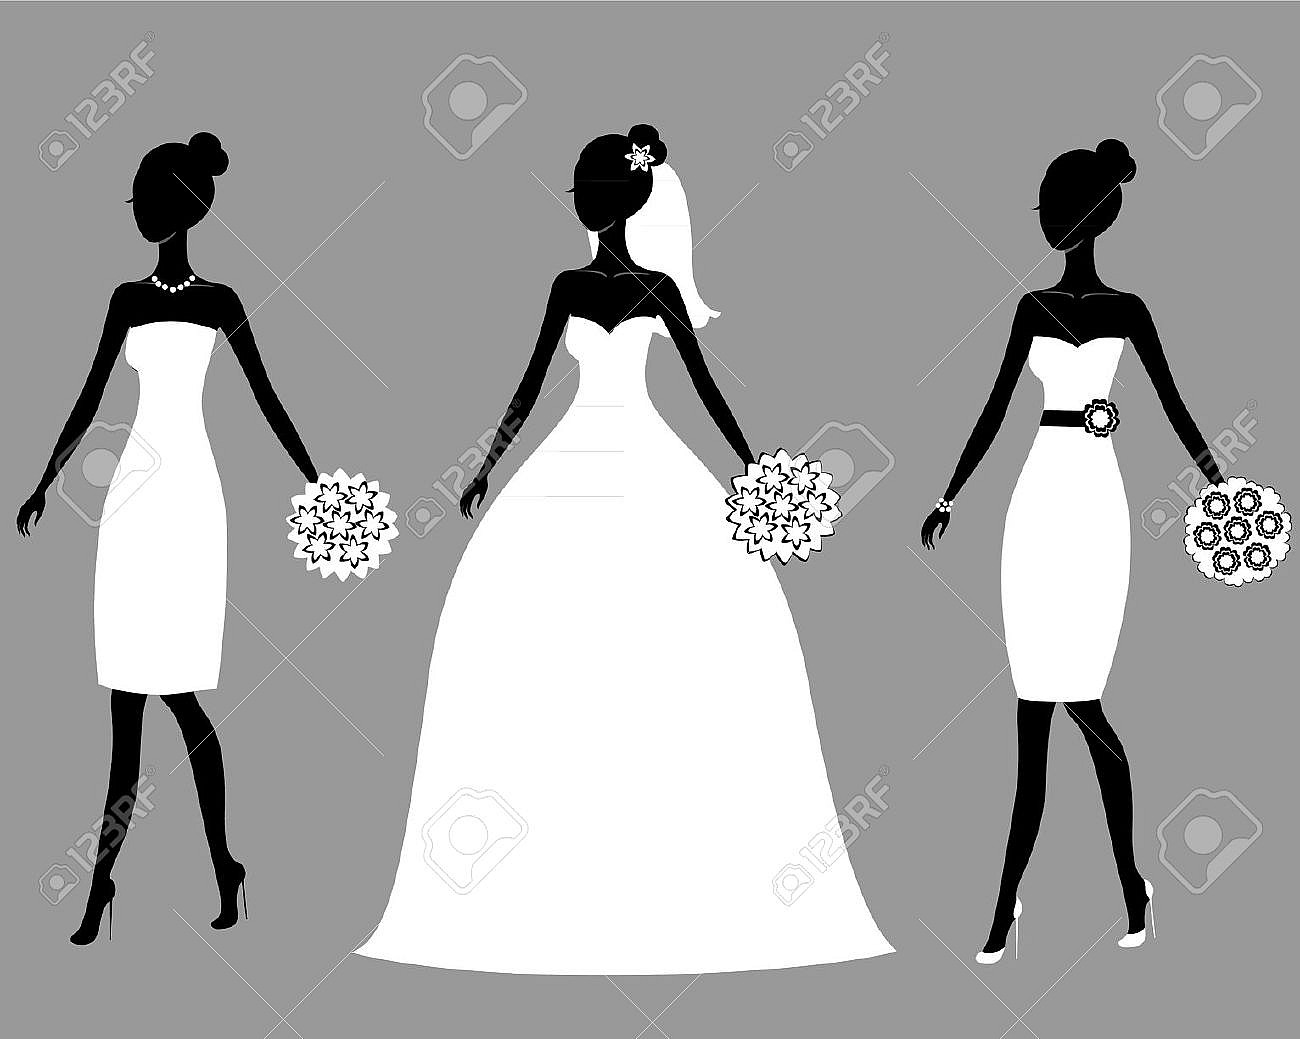 Bridal party silhouette clipart freeuse library Silhouette Clipart Bridal Party Pencil And In Color Clip Art ... freeuse library